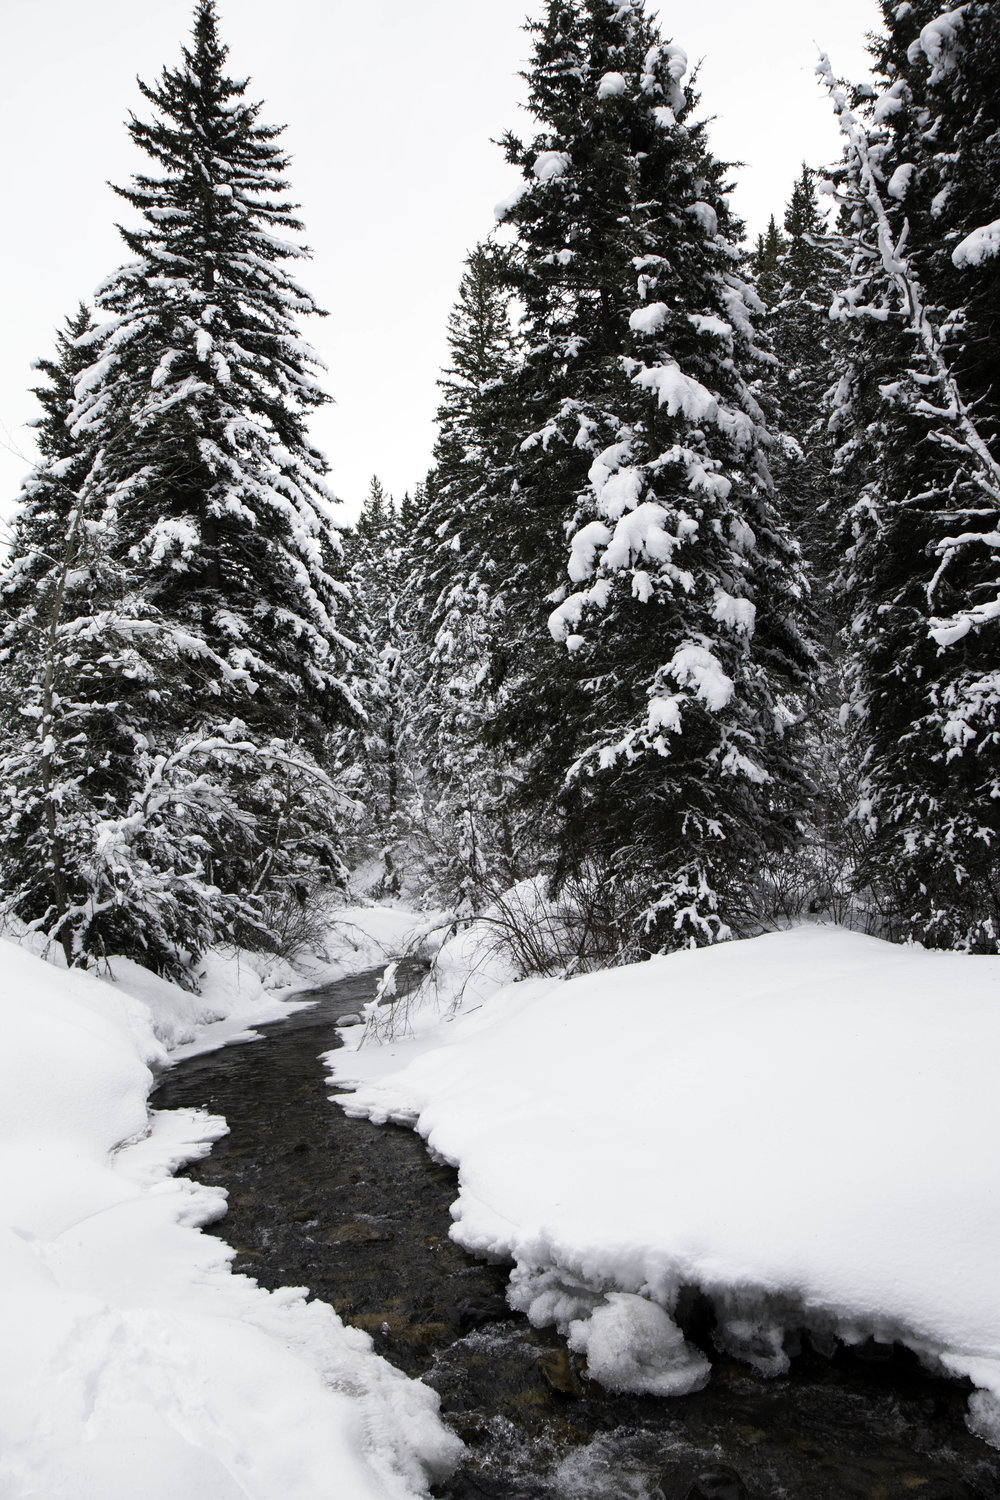 South Cottonwood Creek Trail. A winter hike near Bozeman, MT